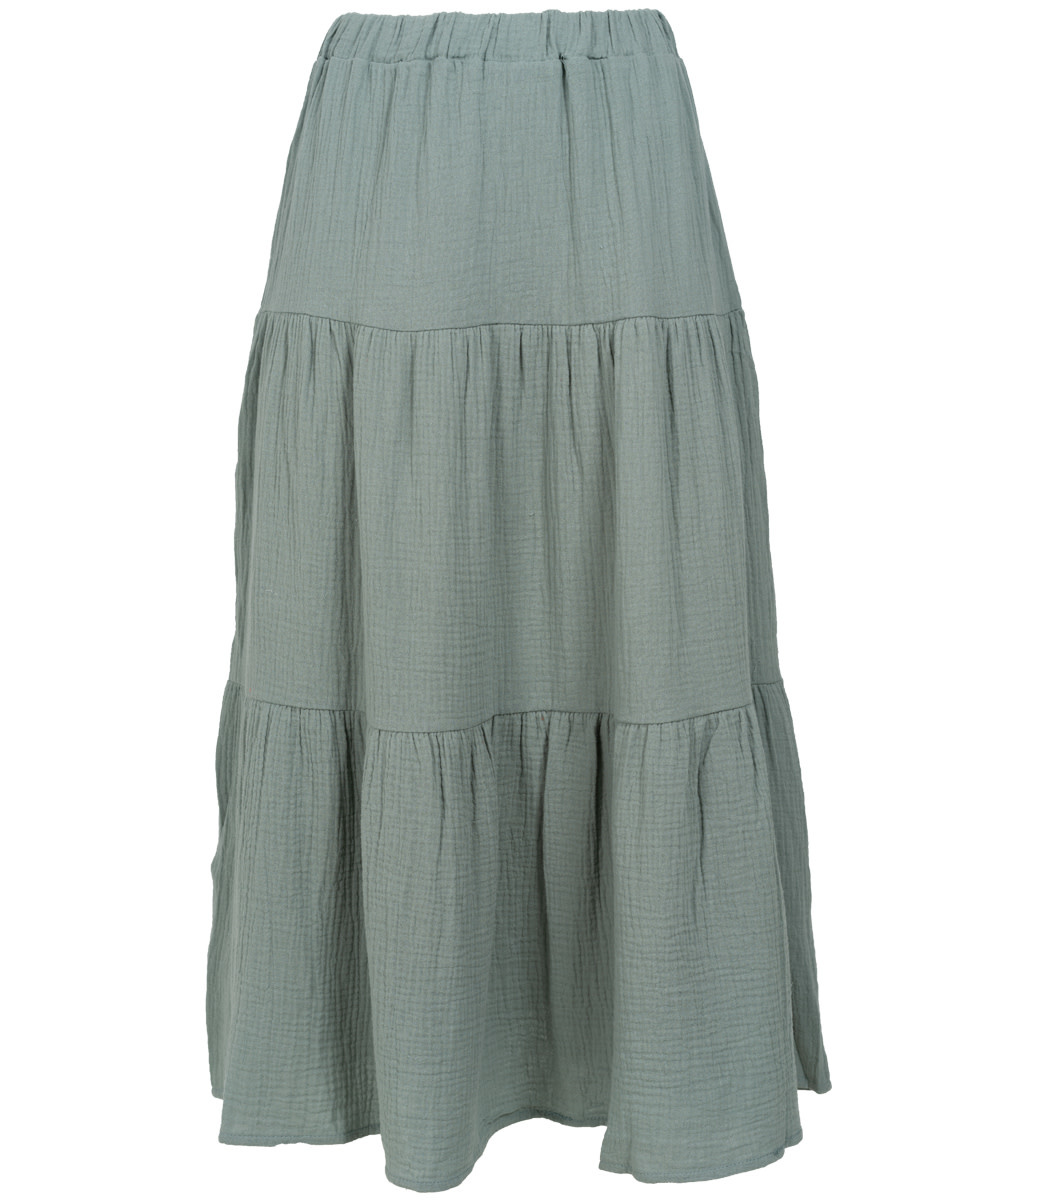 Rebelz Collection Rok groen maxi Bella